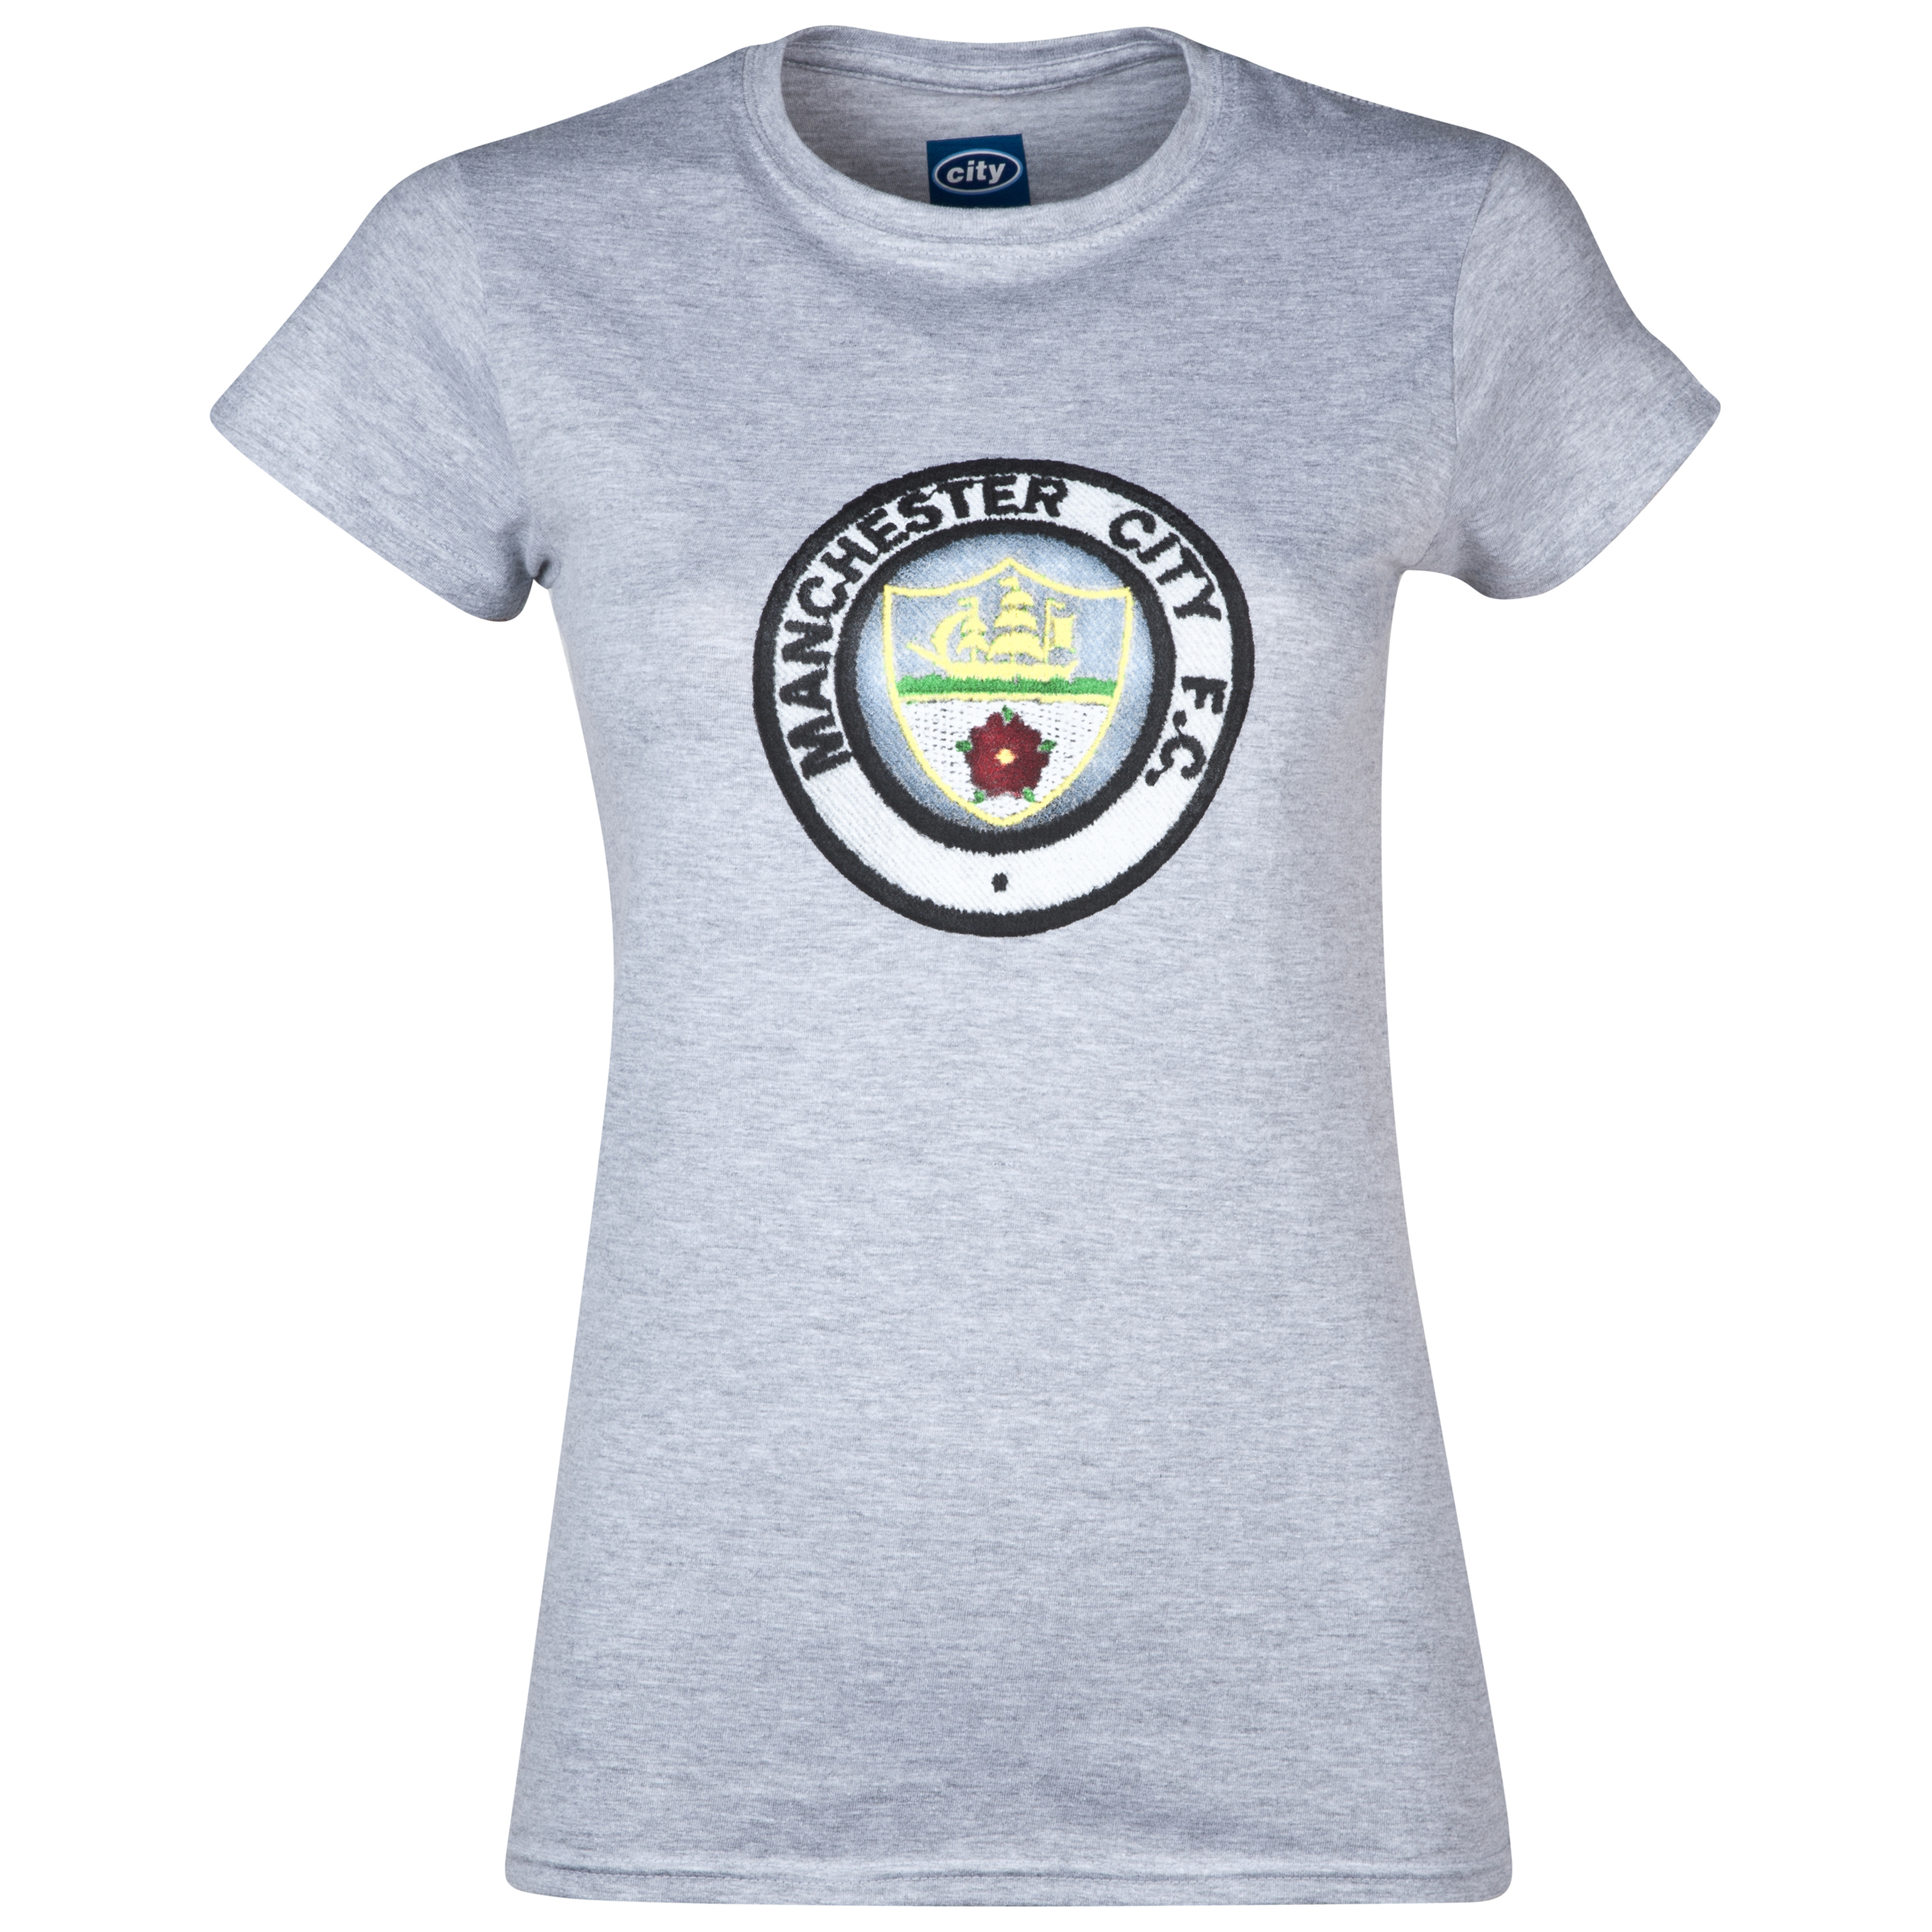 Manchester City 2for£20 Retro Crest T-Shirt - Sports Grey - Womens